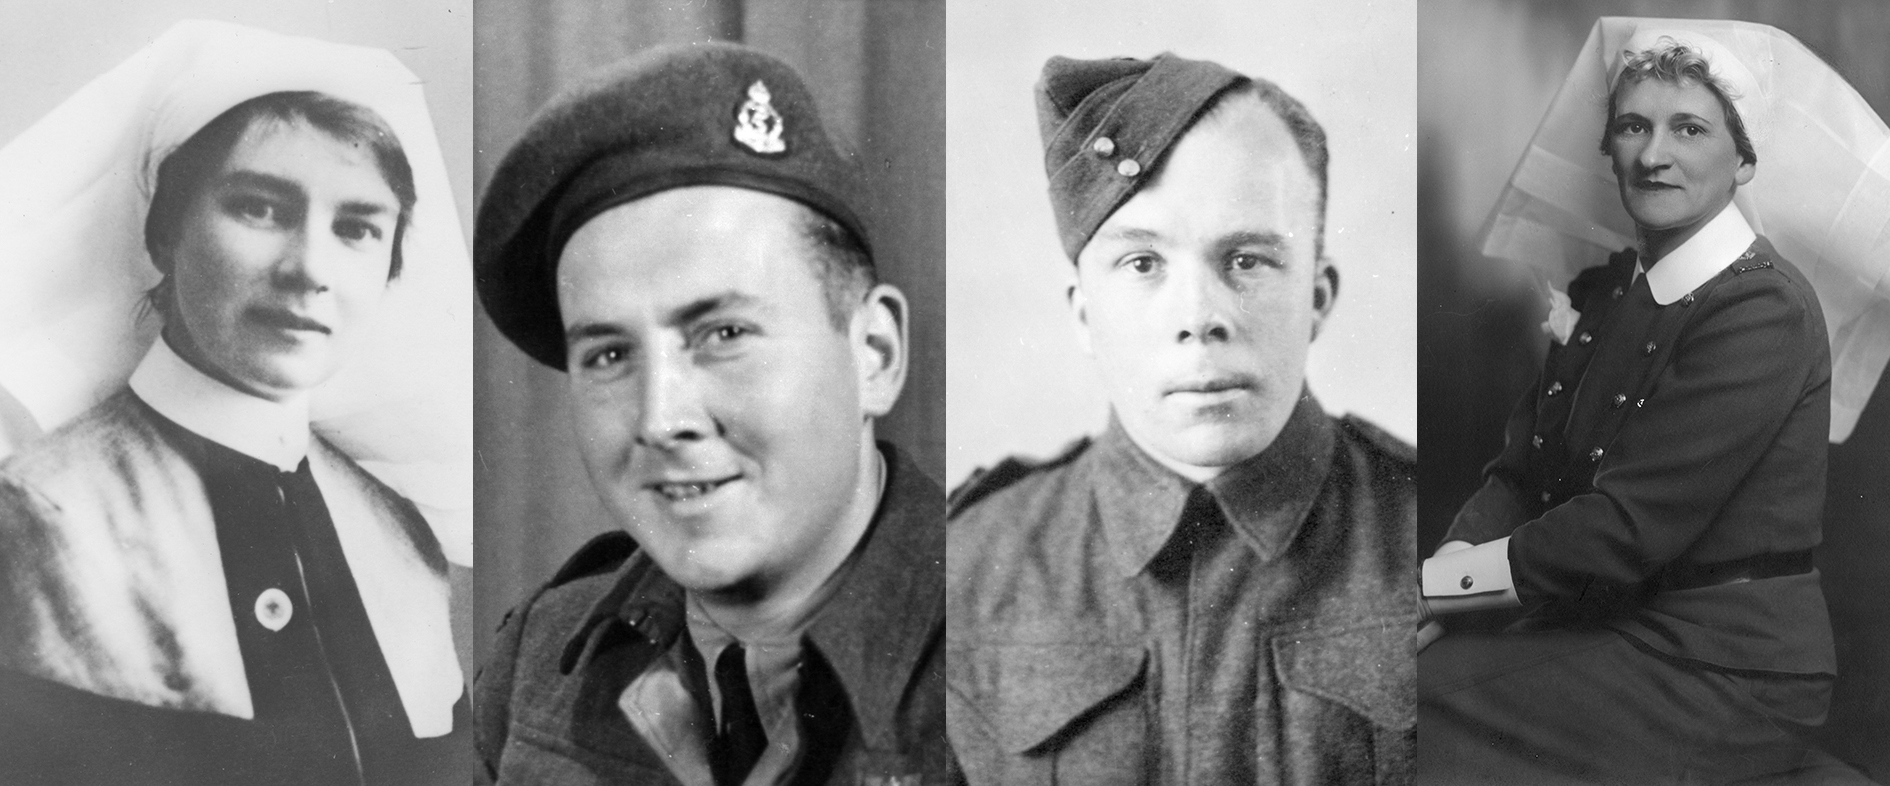 Four images of soldiers who served with the Canadian Medical Army Corps.